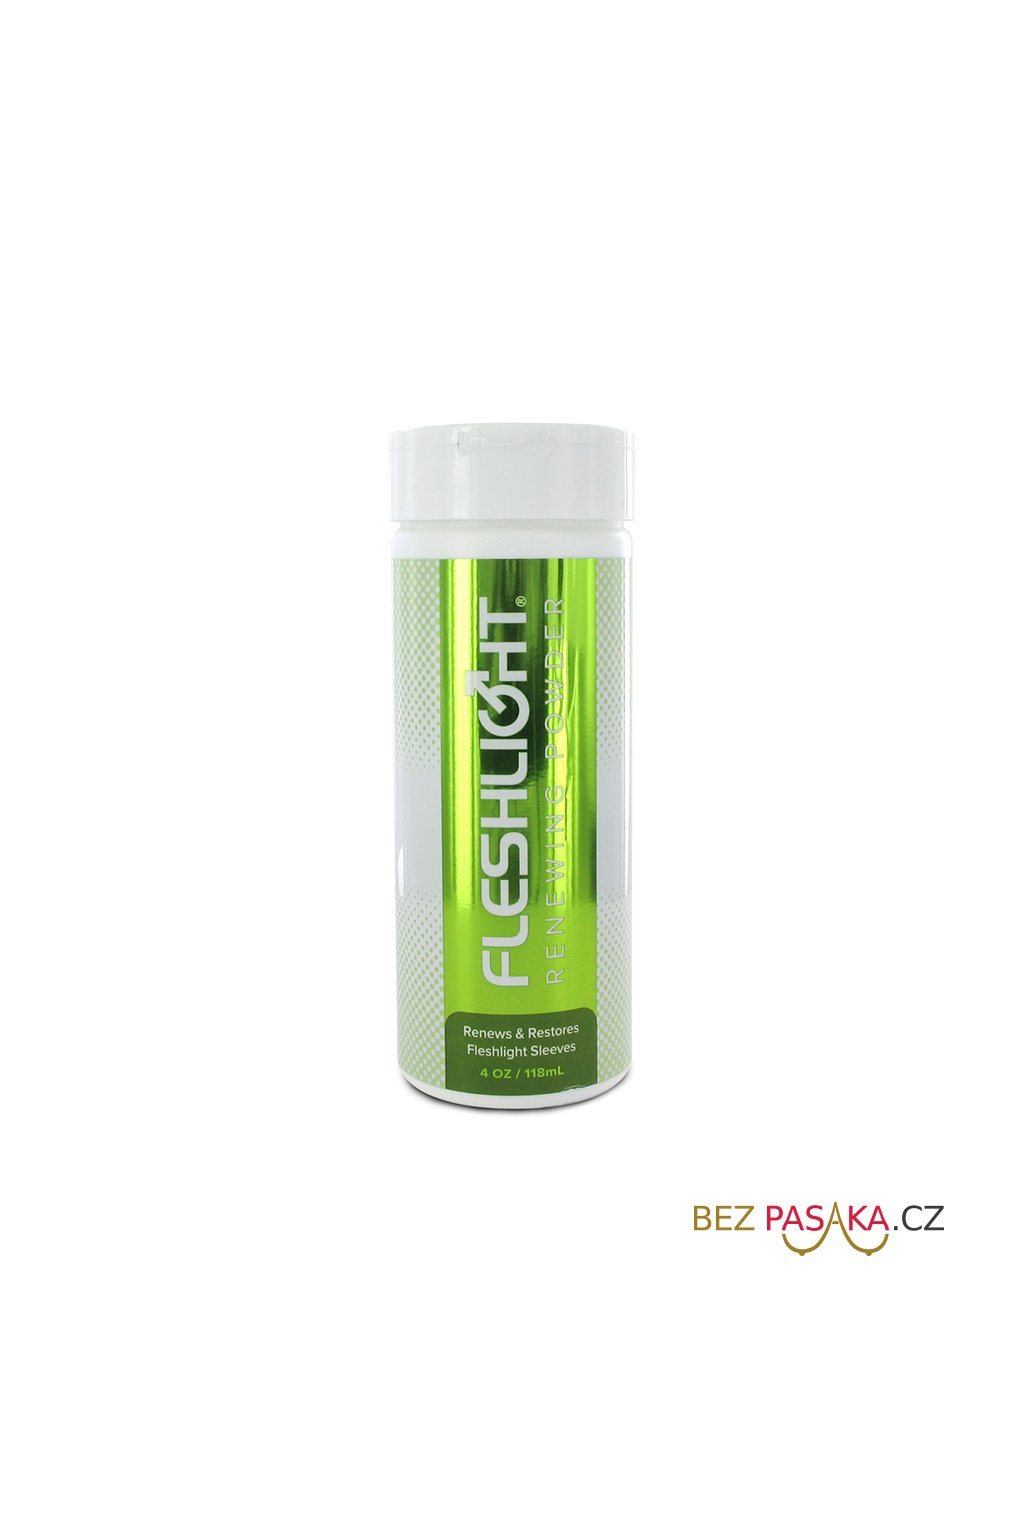 cistici pudr k vaginam fleshlight renewing powder 118 ml 1 bezpasaka.cz